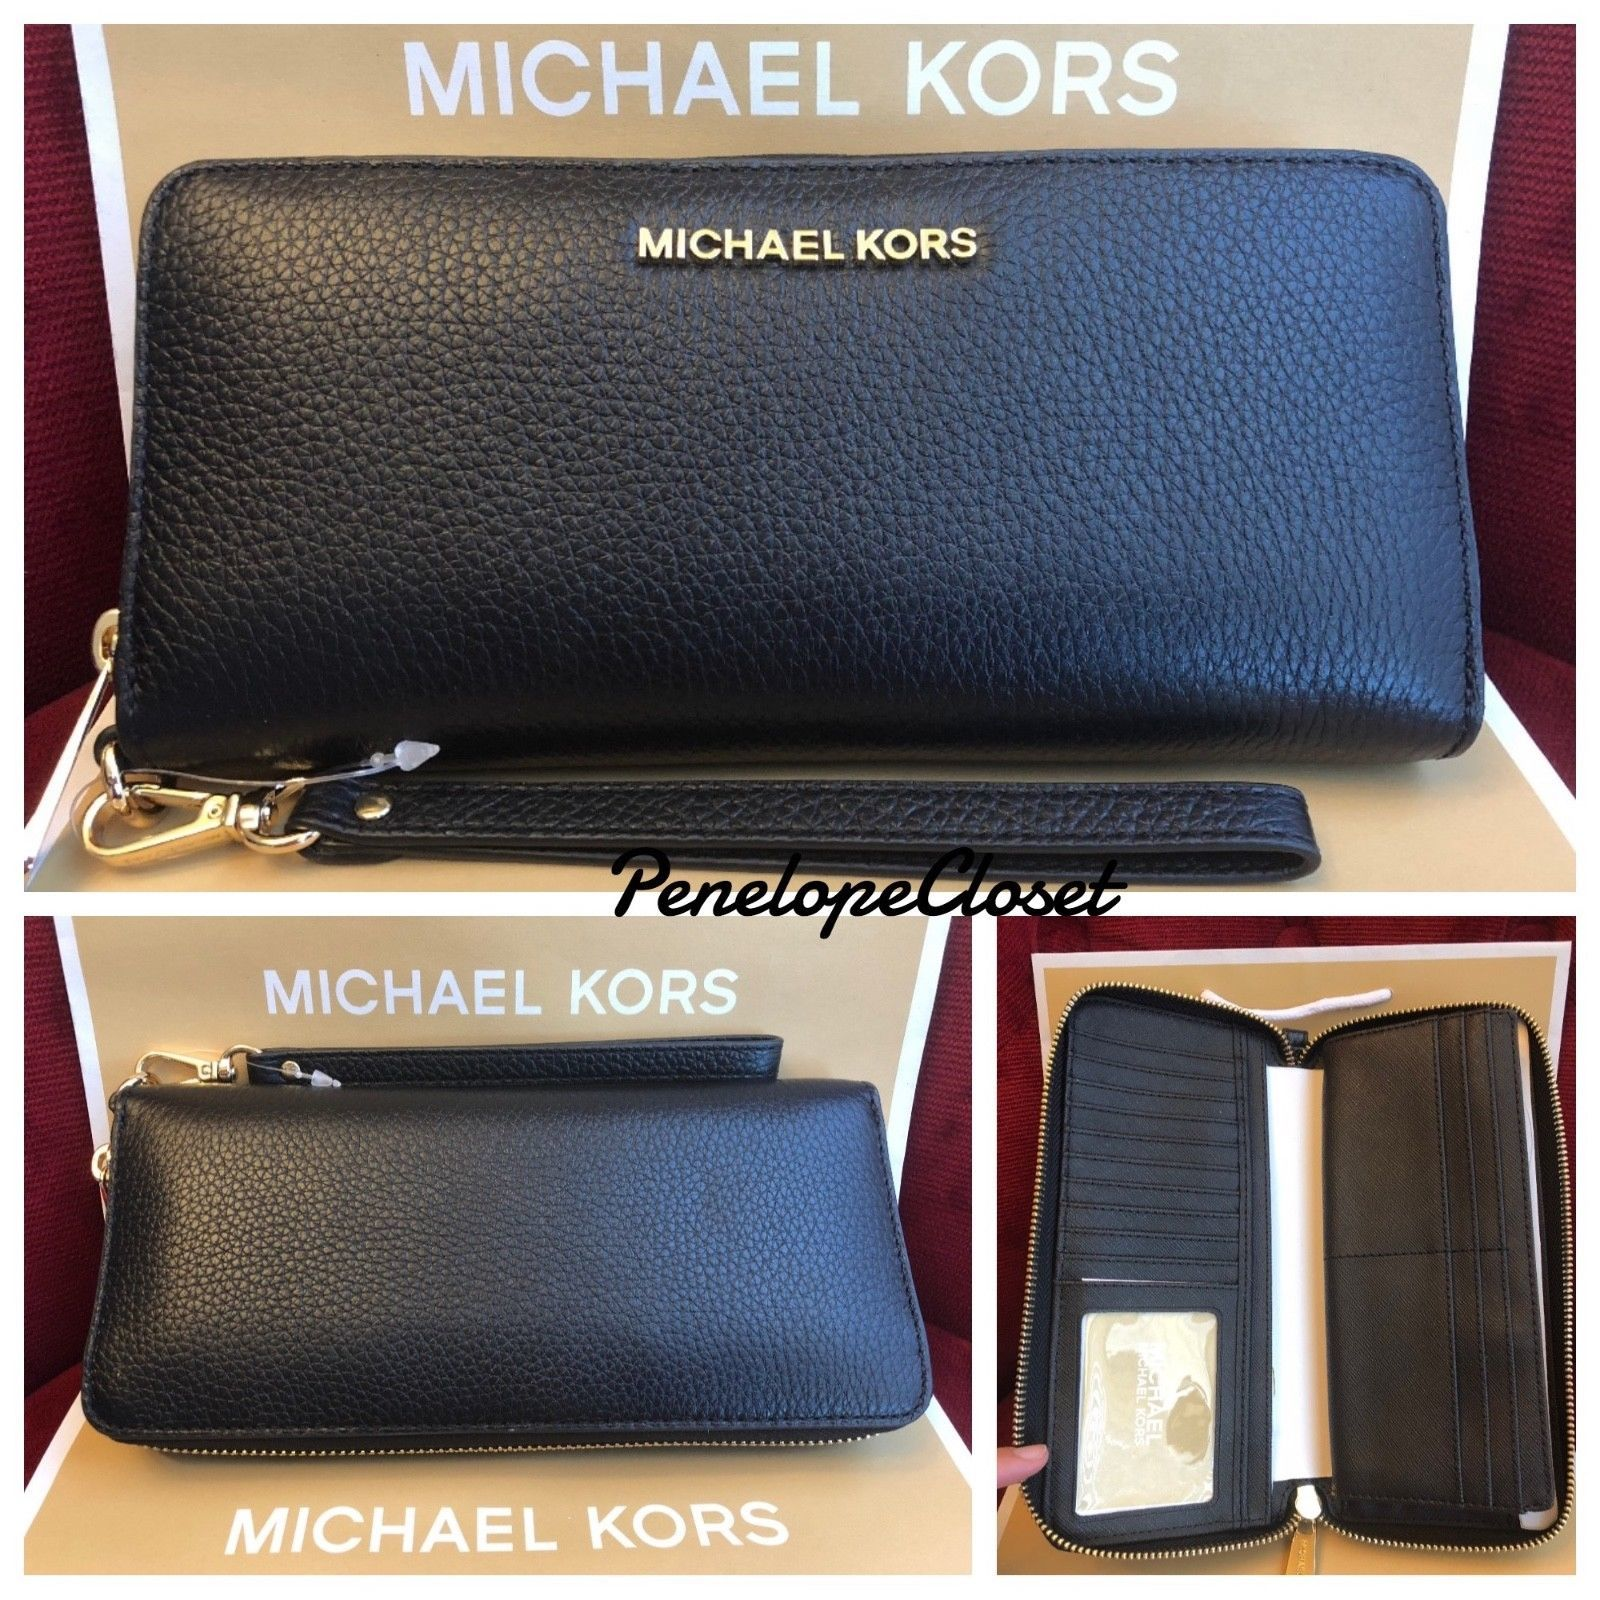 Nwt Michael Kors Pebbled Leather Jet Set and 50 similar items